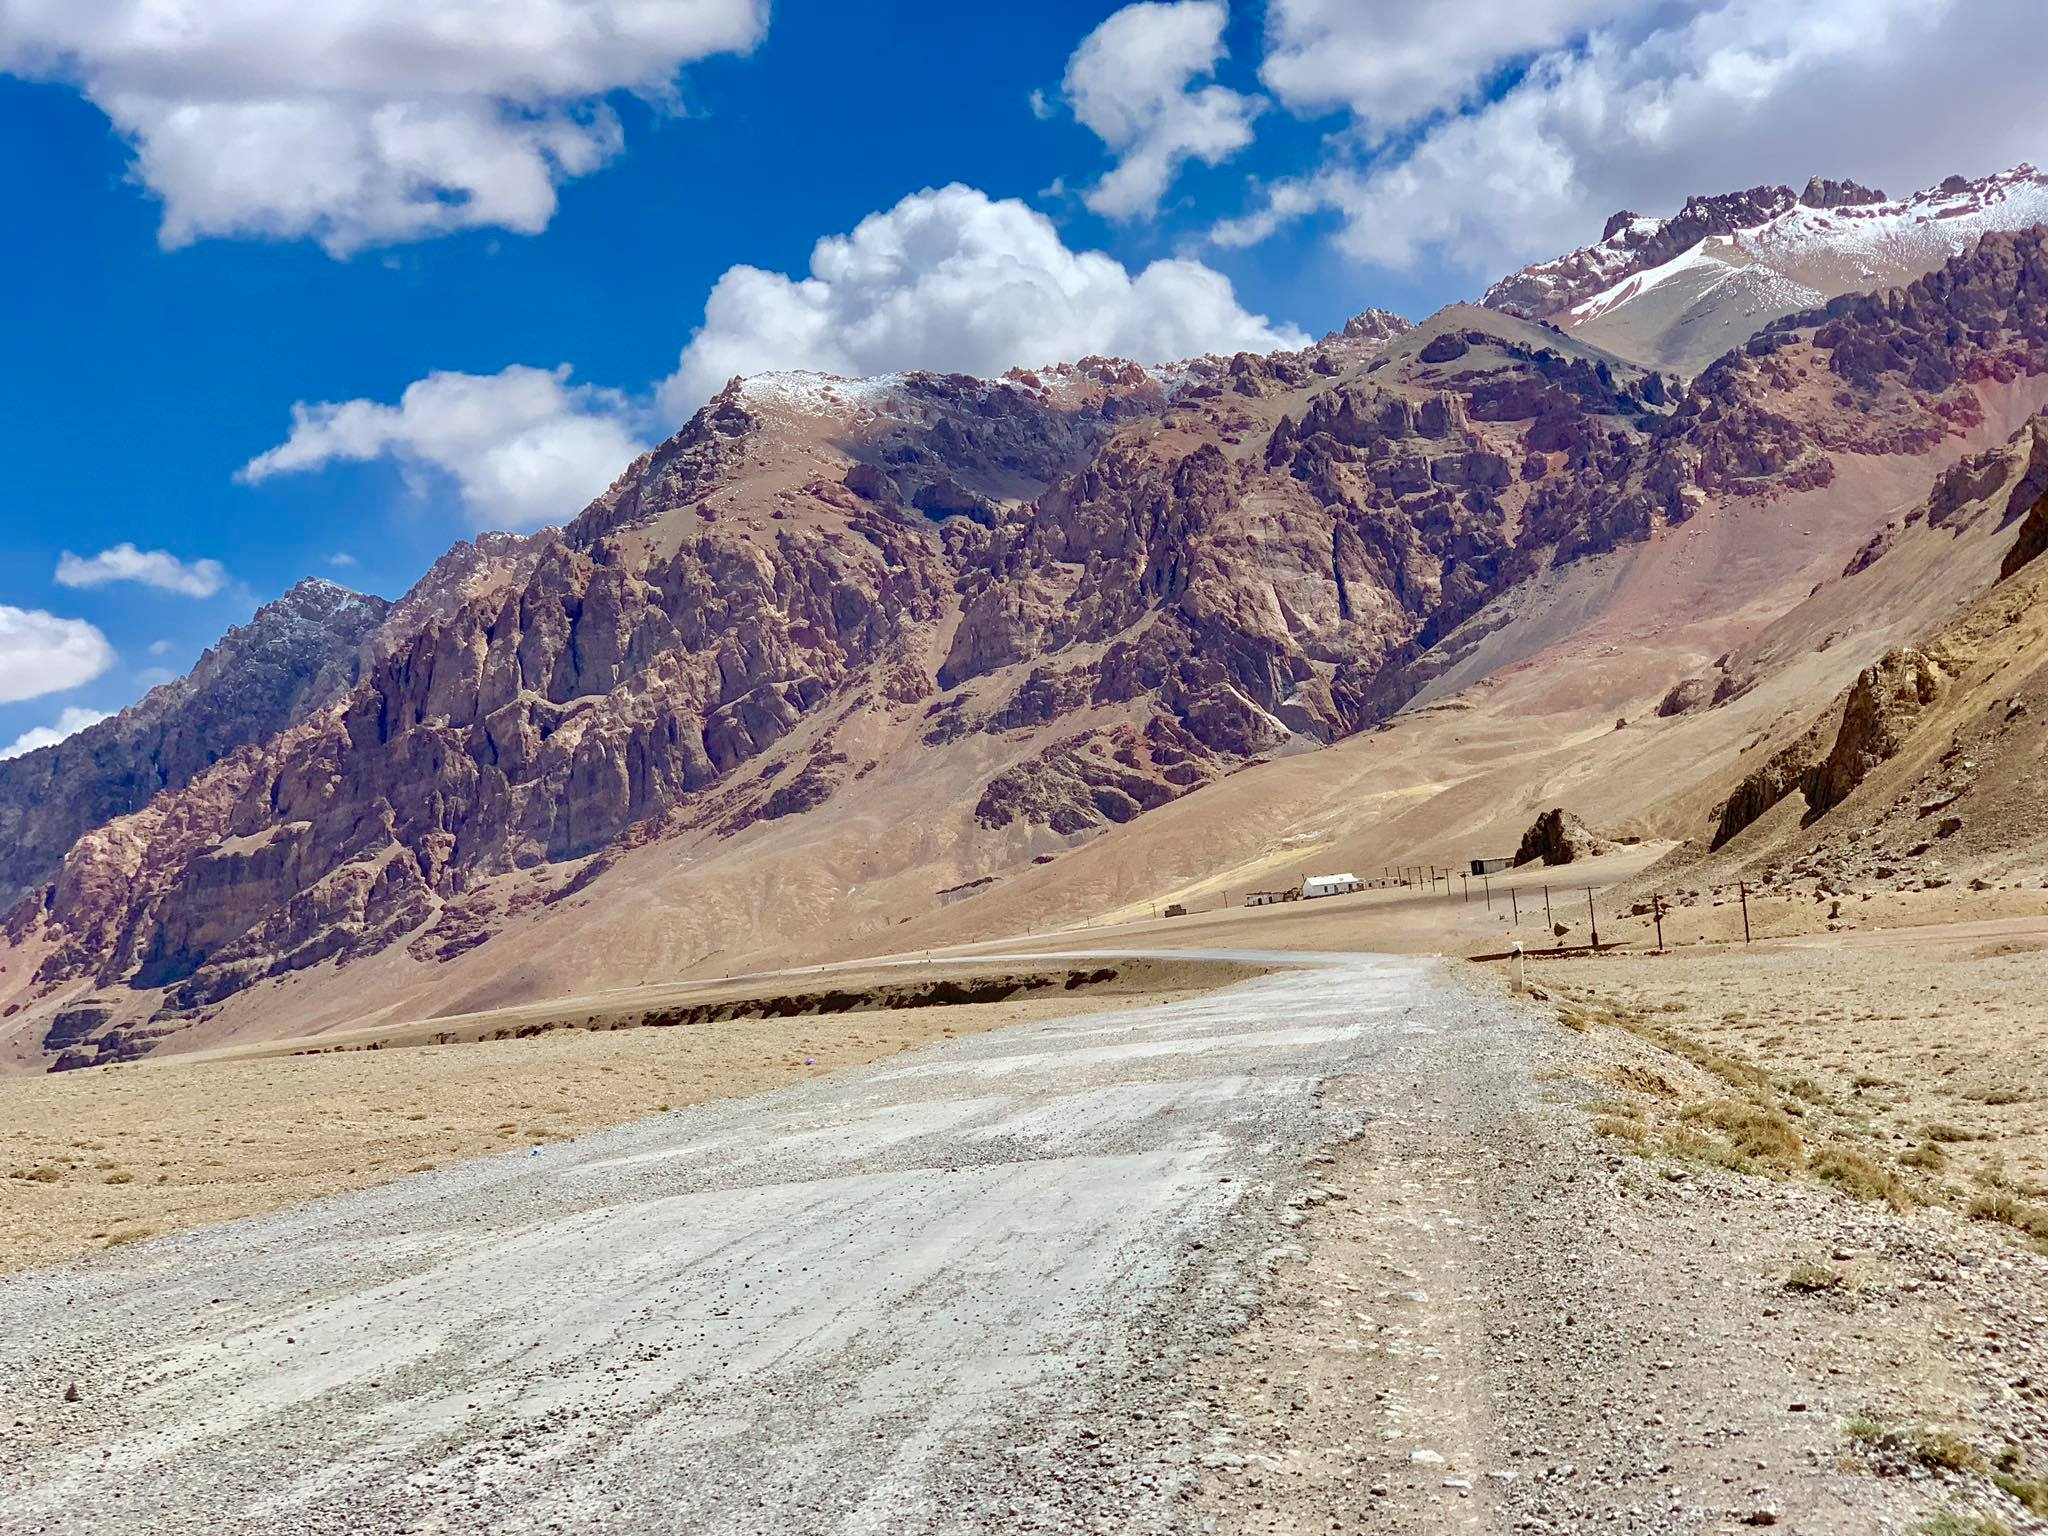 Kach Solo Travels in 2019 Our unexpected last stop during our Pamir Highway Roadtrip10.jpg